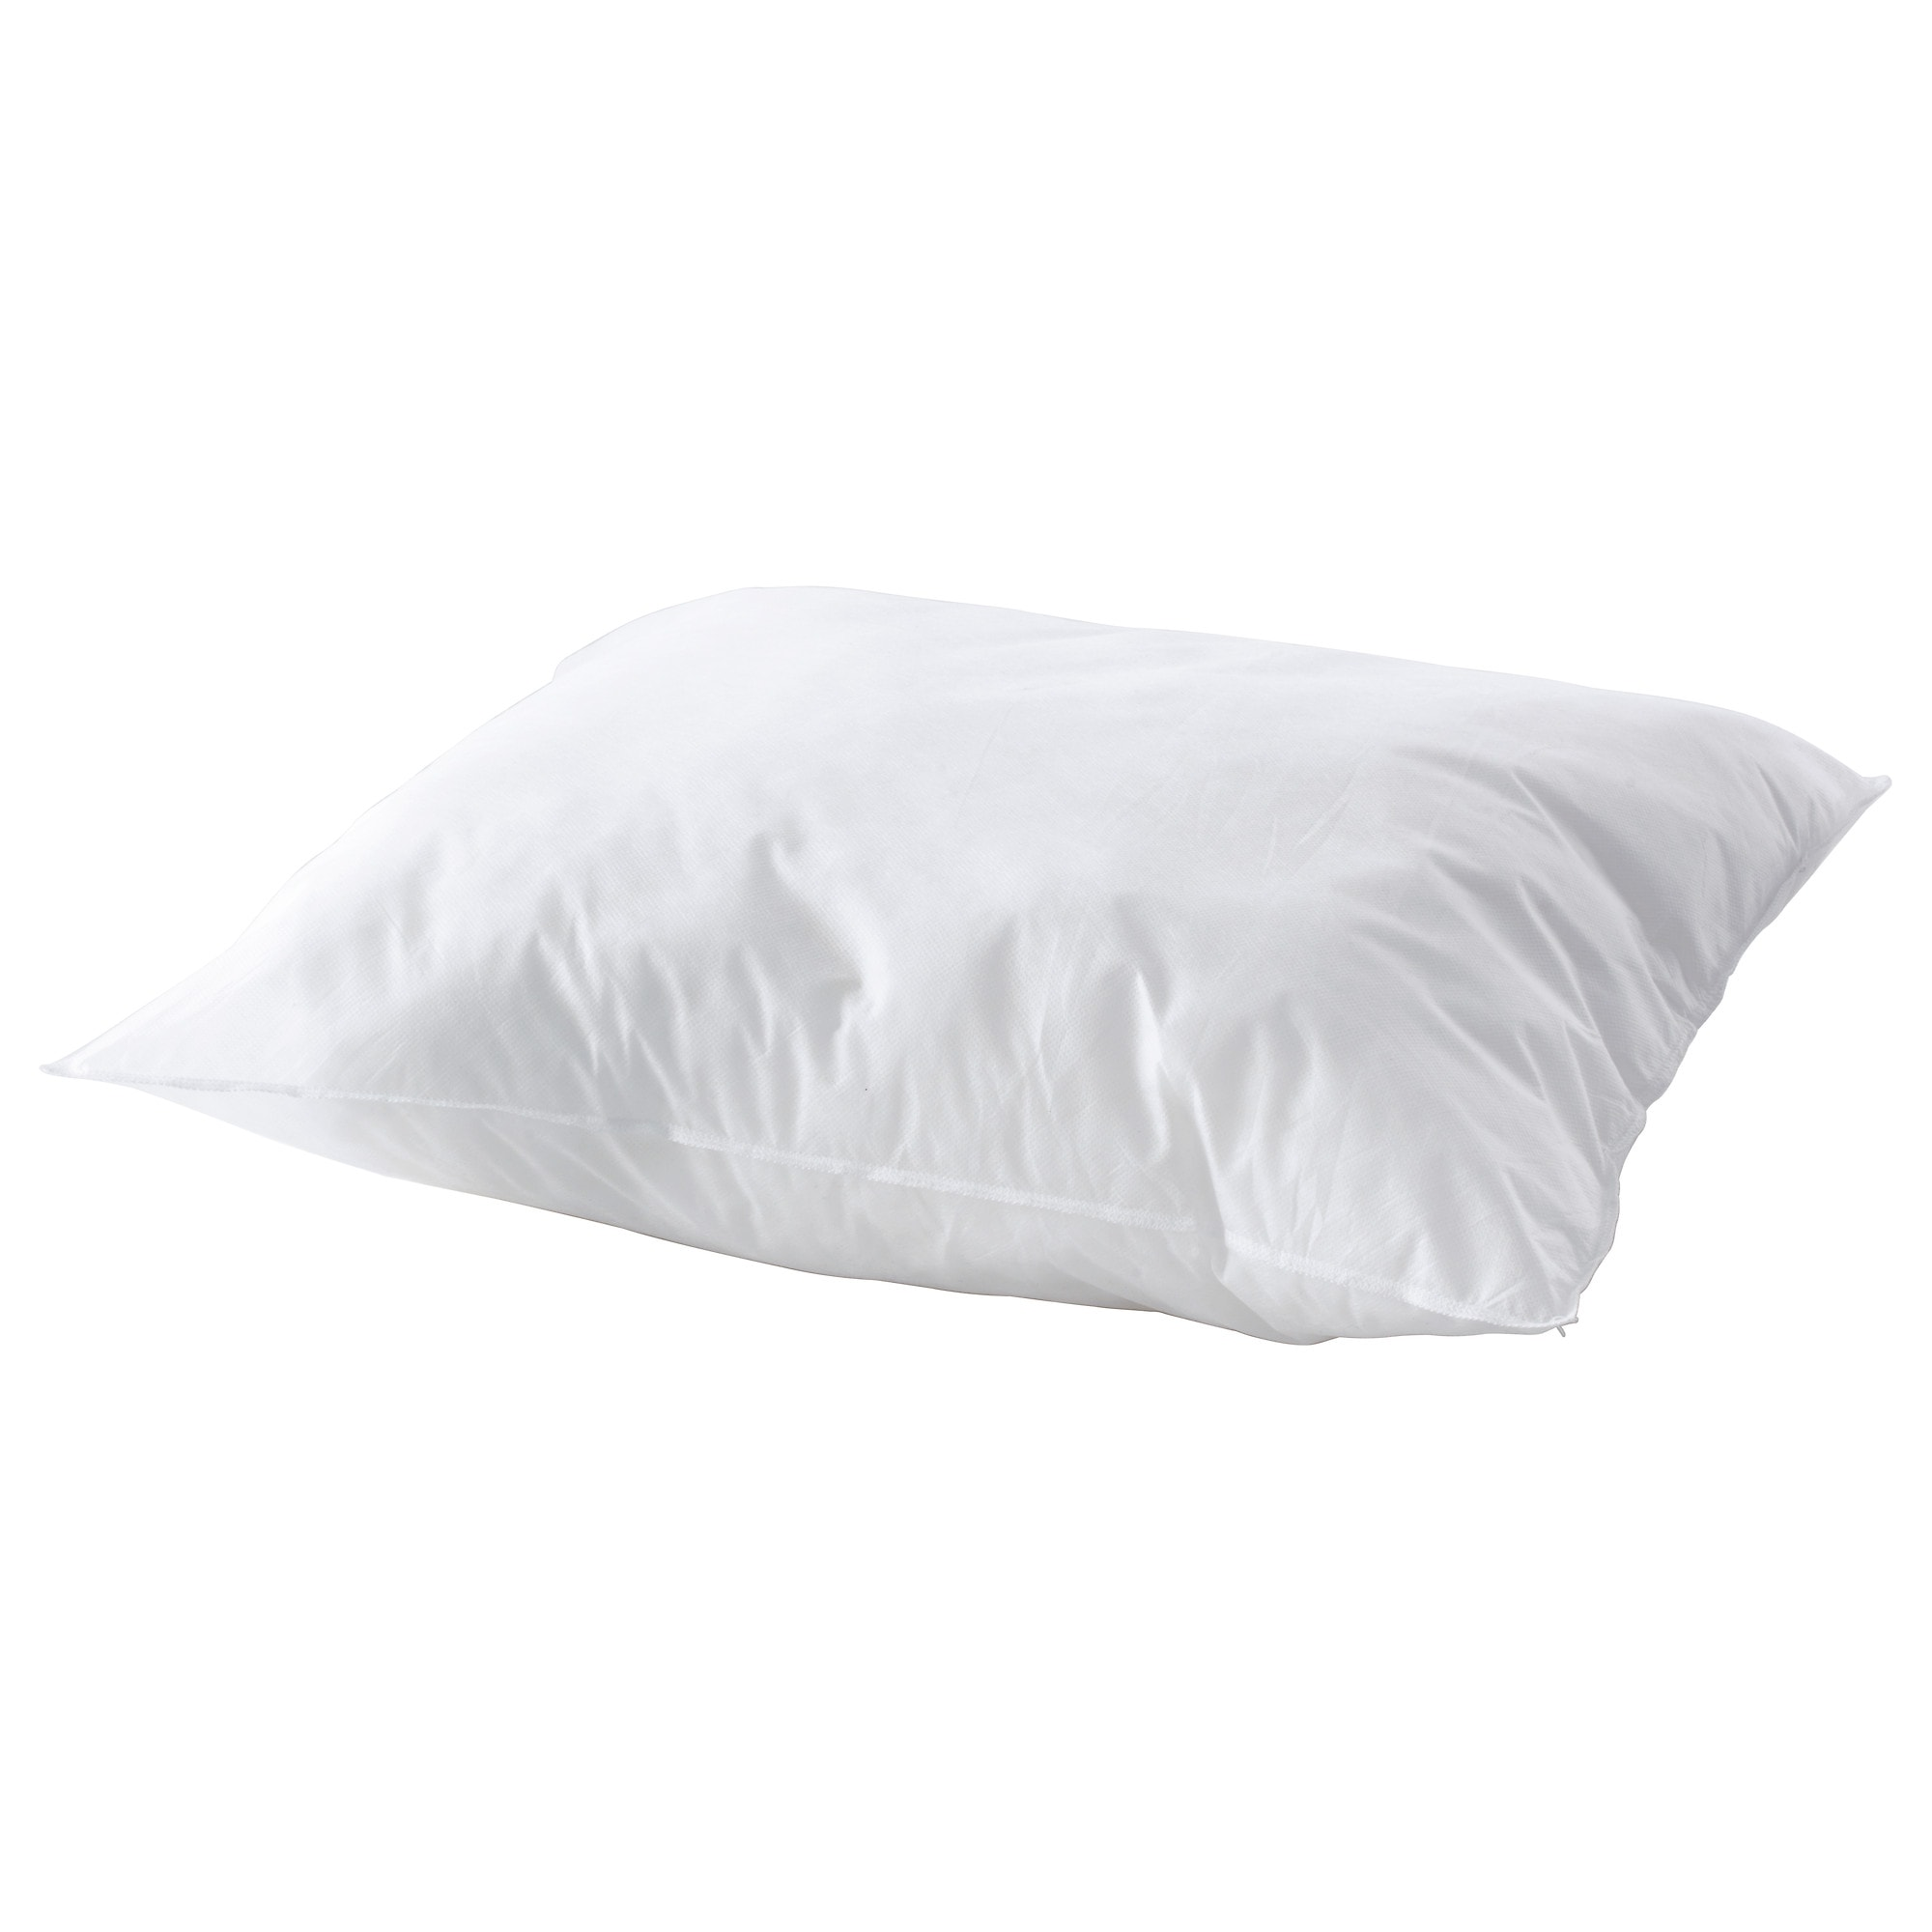 White Bed Pillows - Sl n pillow softer length 20 width 26 filling weight 13